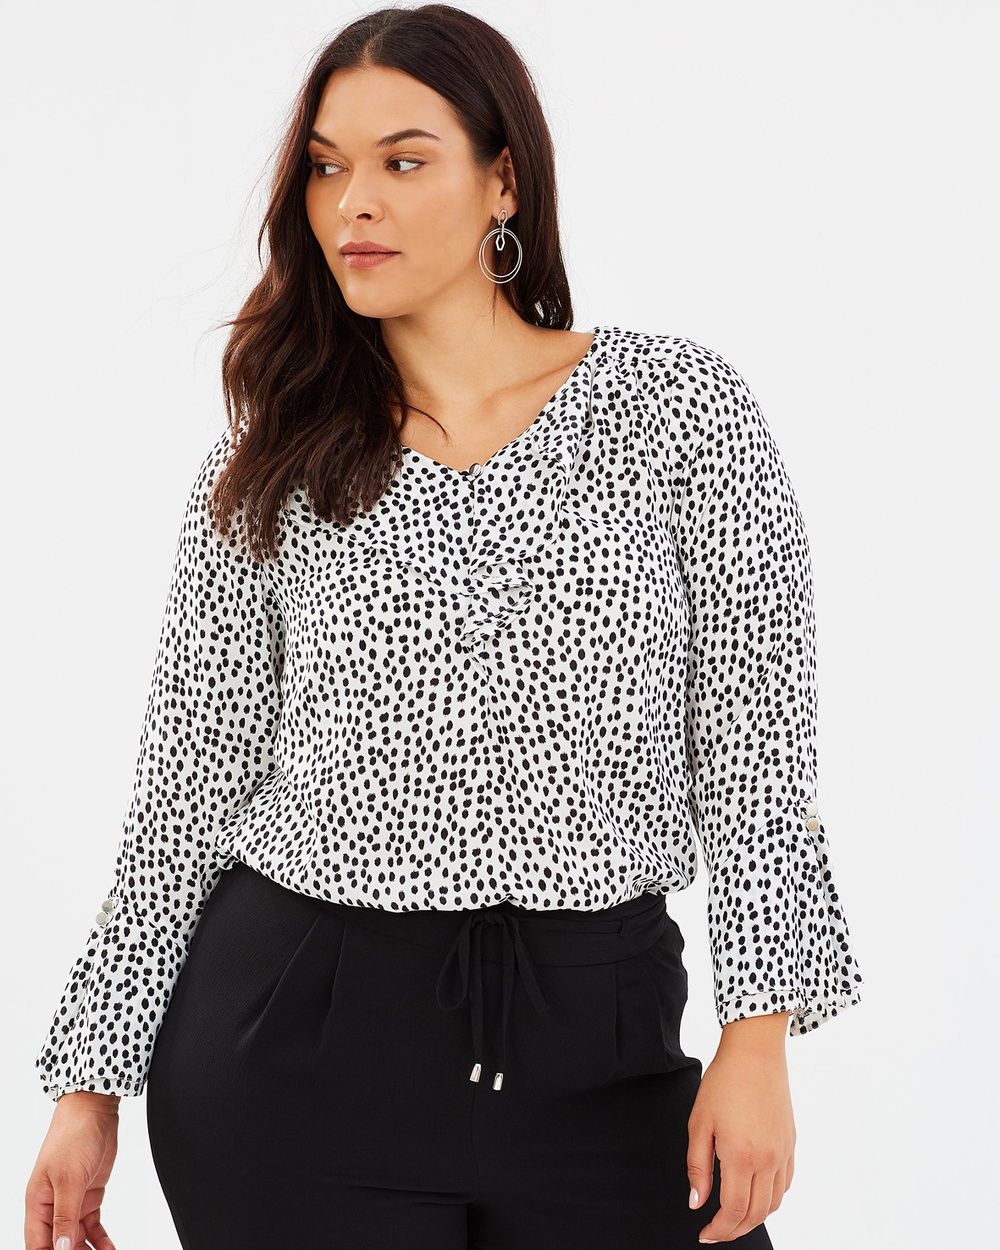 EVANS Spotted Frill Shirt Tops Black & White Spotted Frill Shirt